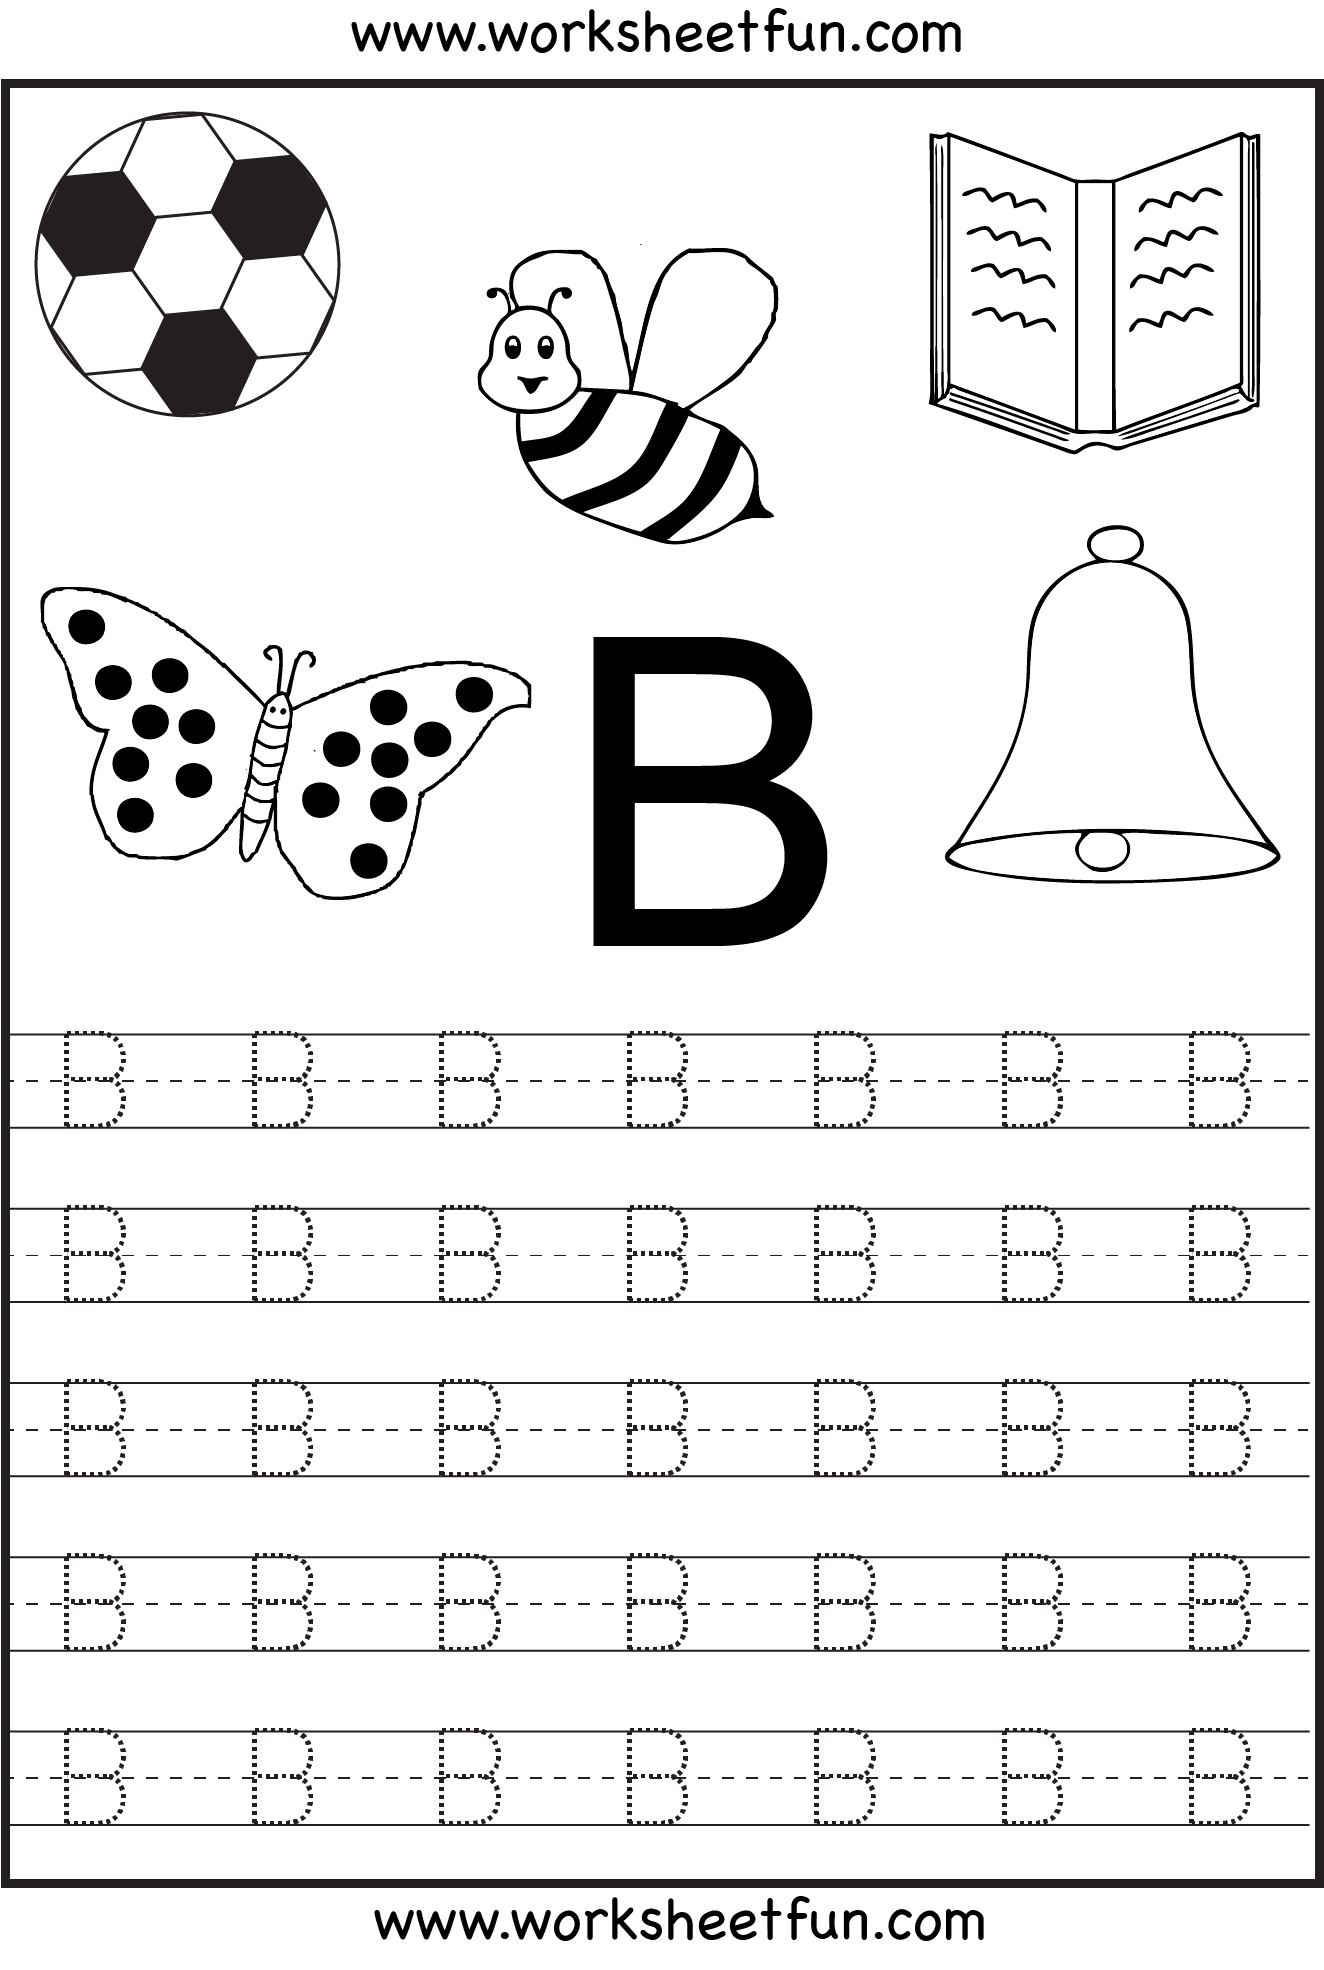 Preschool Letter Worksheets F is for Frog – Letter a Worksheets for Preschool